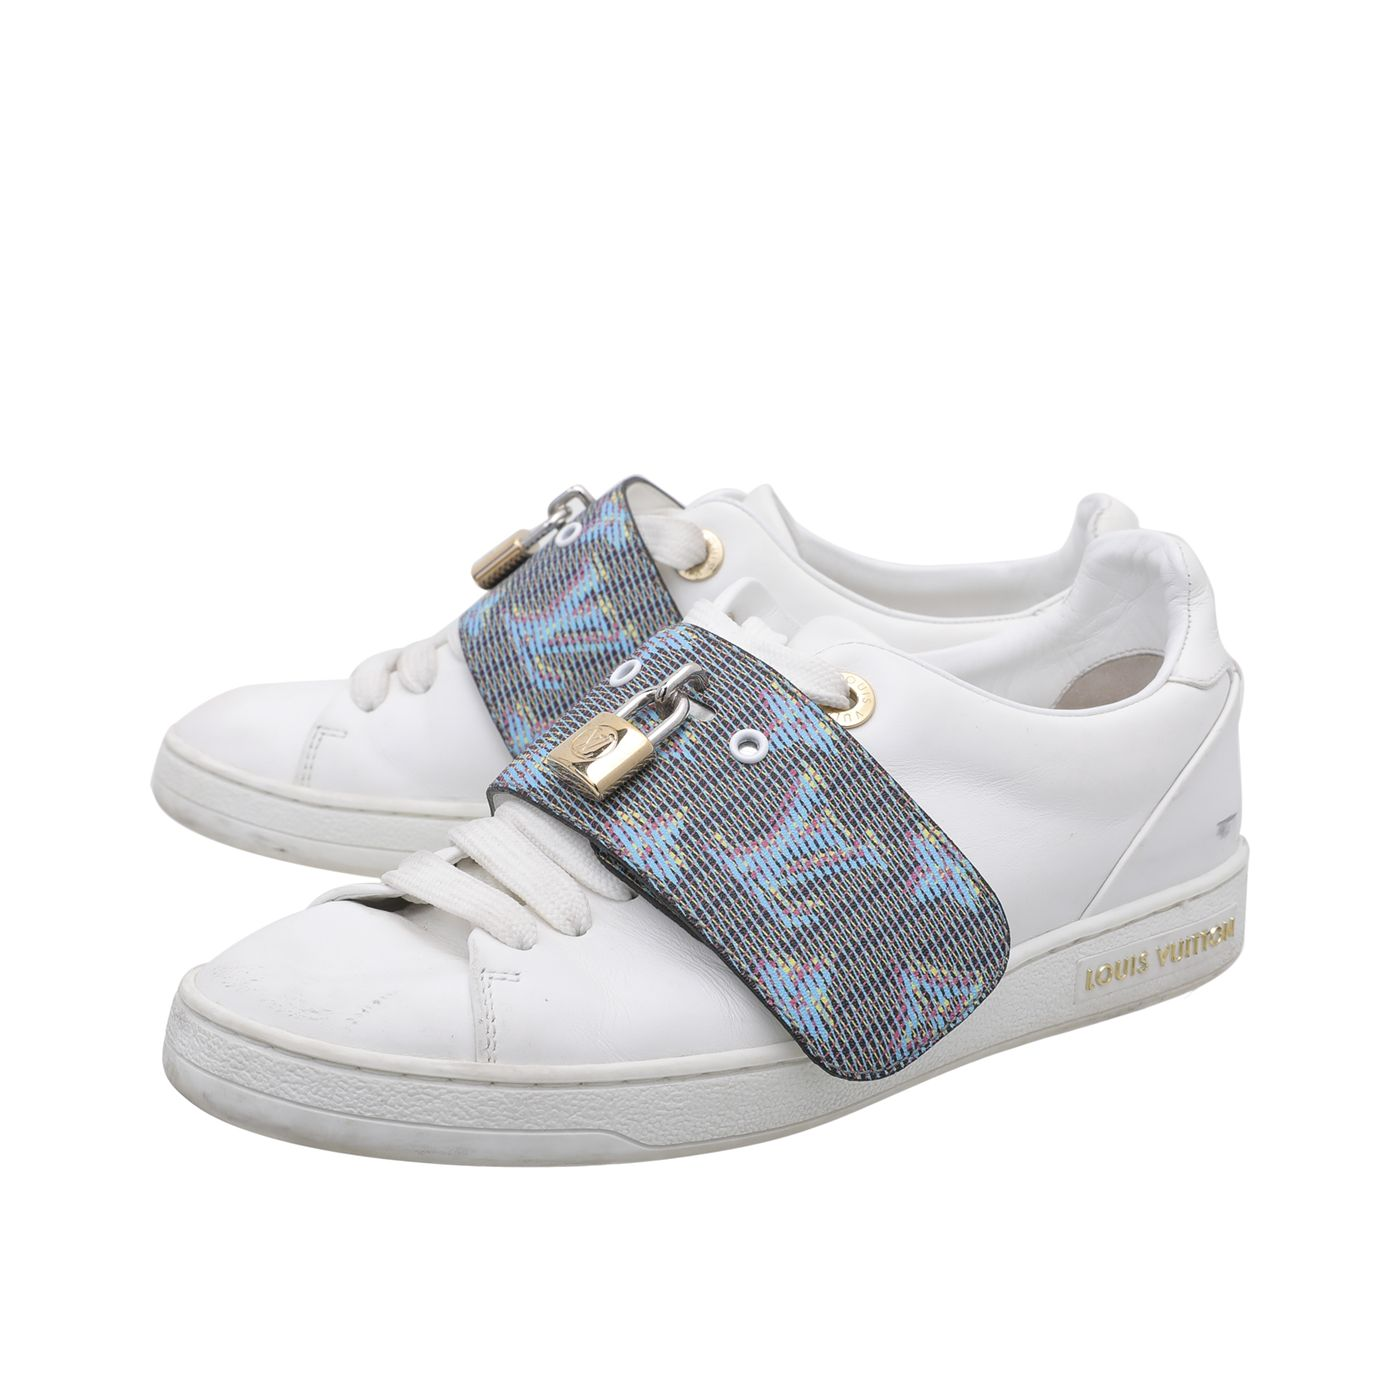 Louis Vuitton White Frontrow Lock Sneakers 35